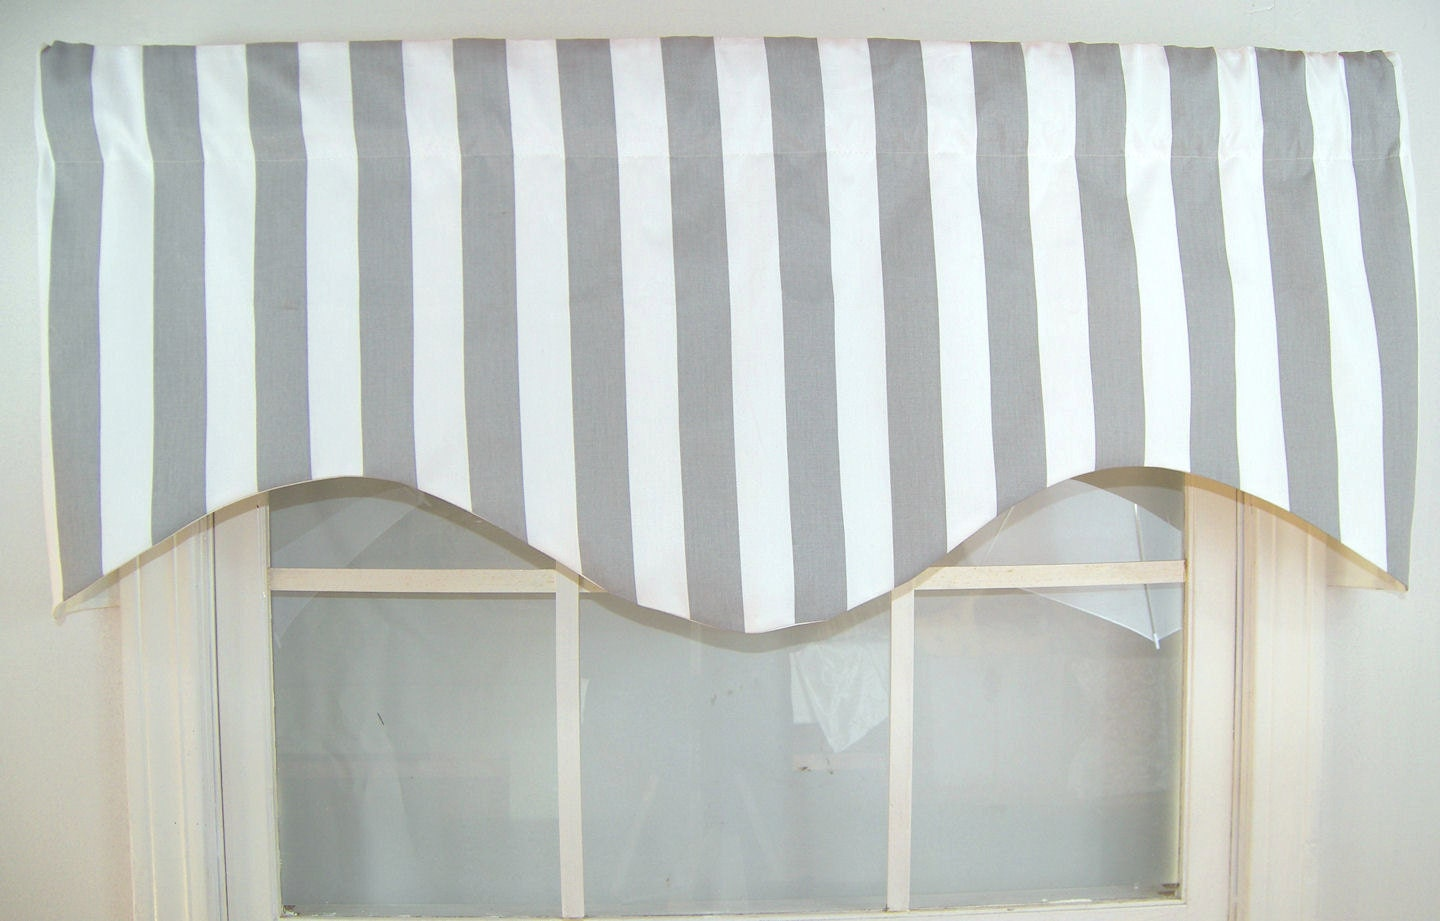 Awning Striped Shaped Valance in grey and whitenavy by VieDeJolie